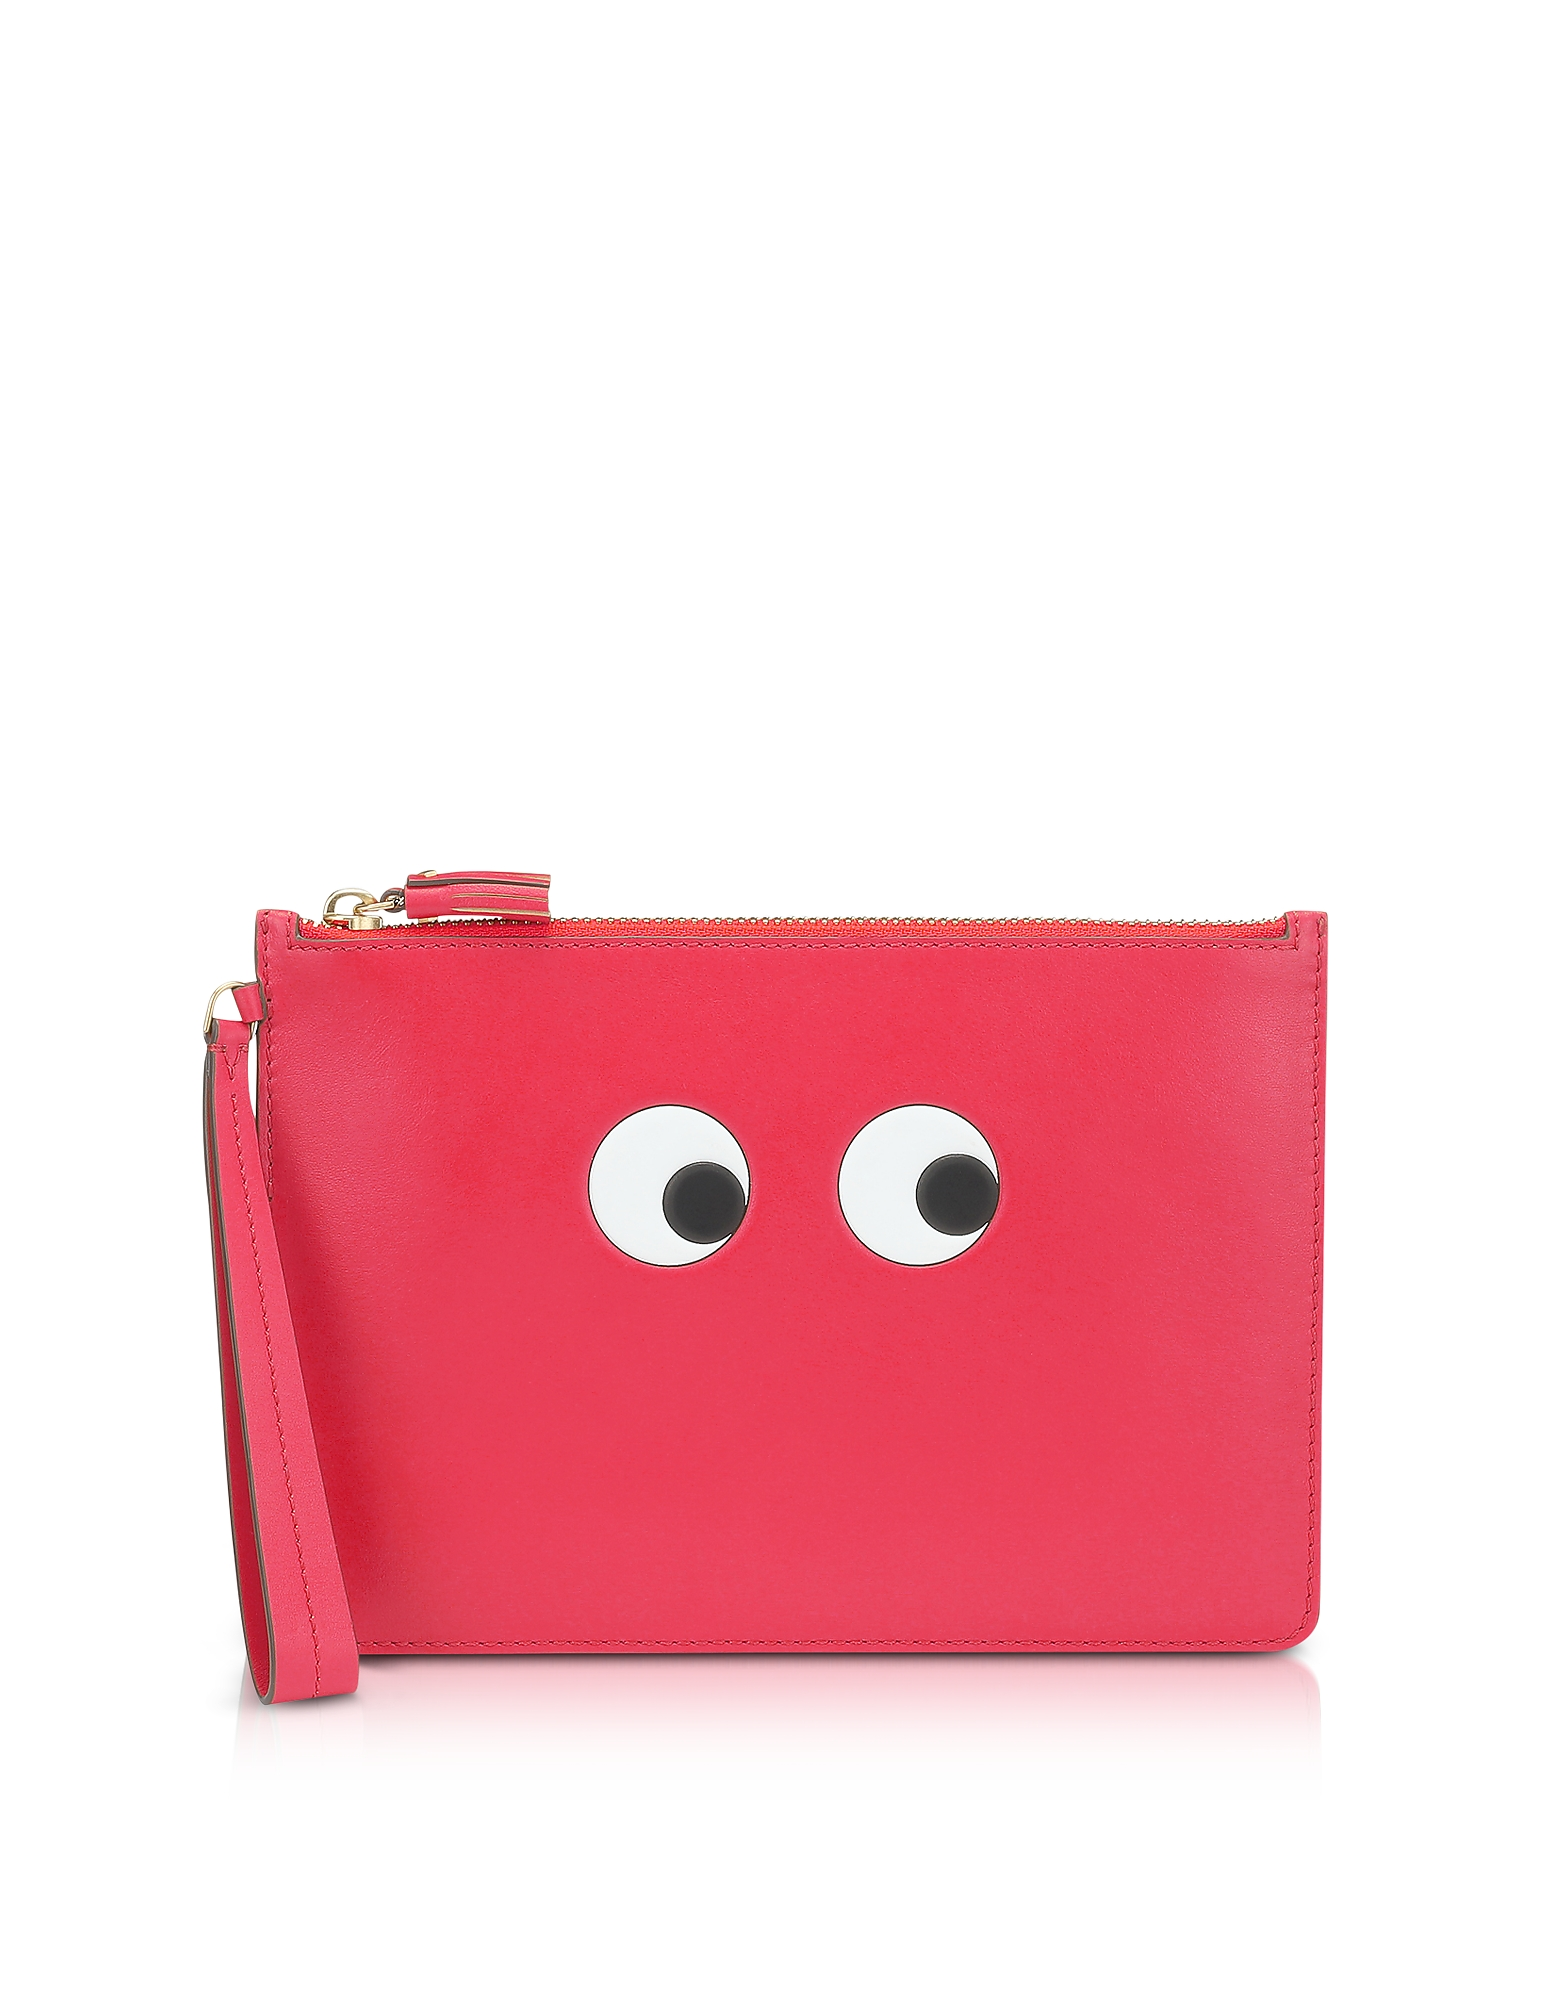 Anya Hindmarch Designer Handbags, Lollipop Circus Leather Eyes Zip-Top Pouch